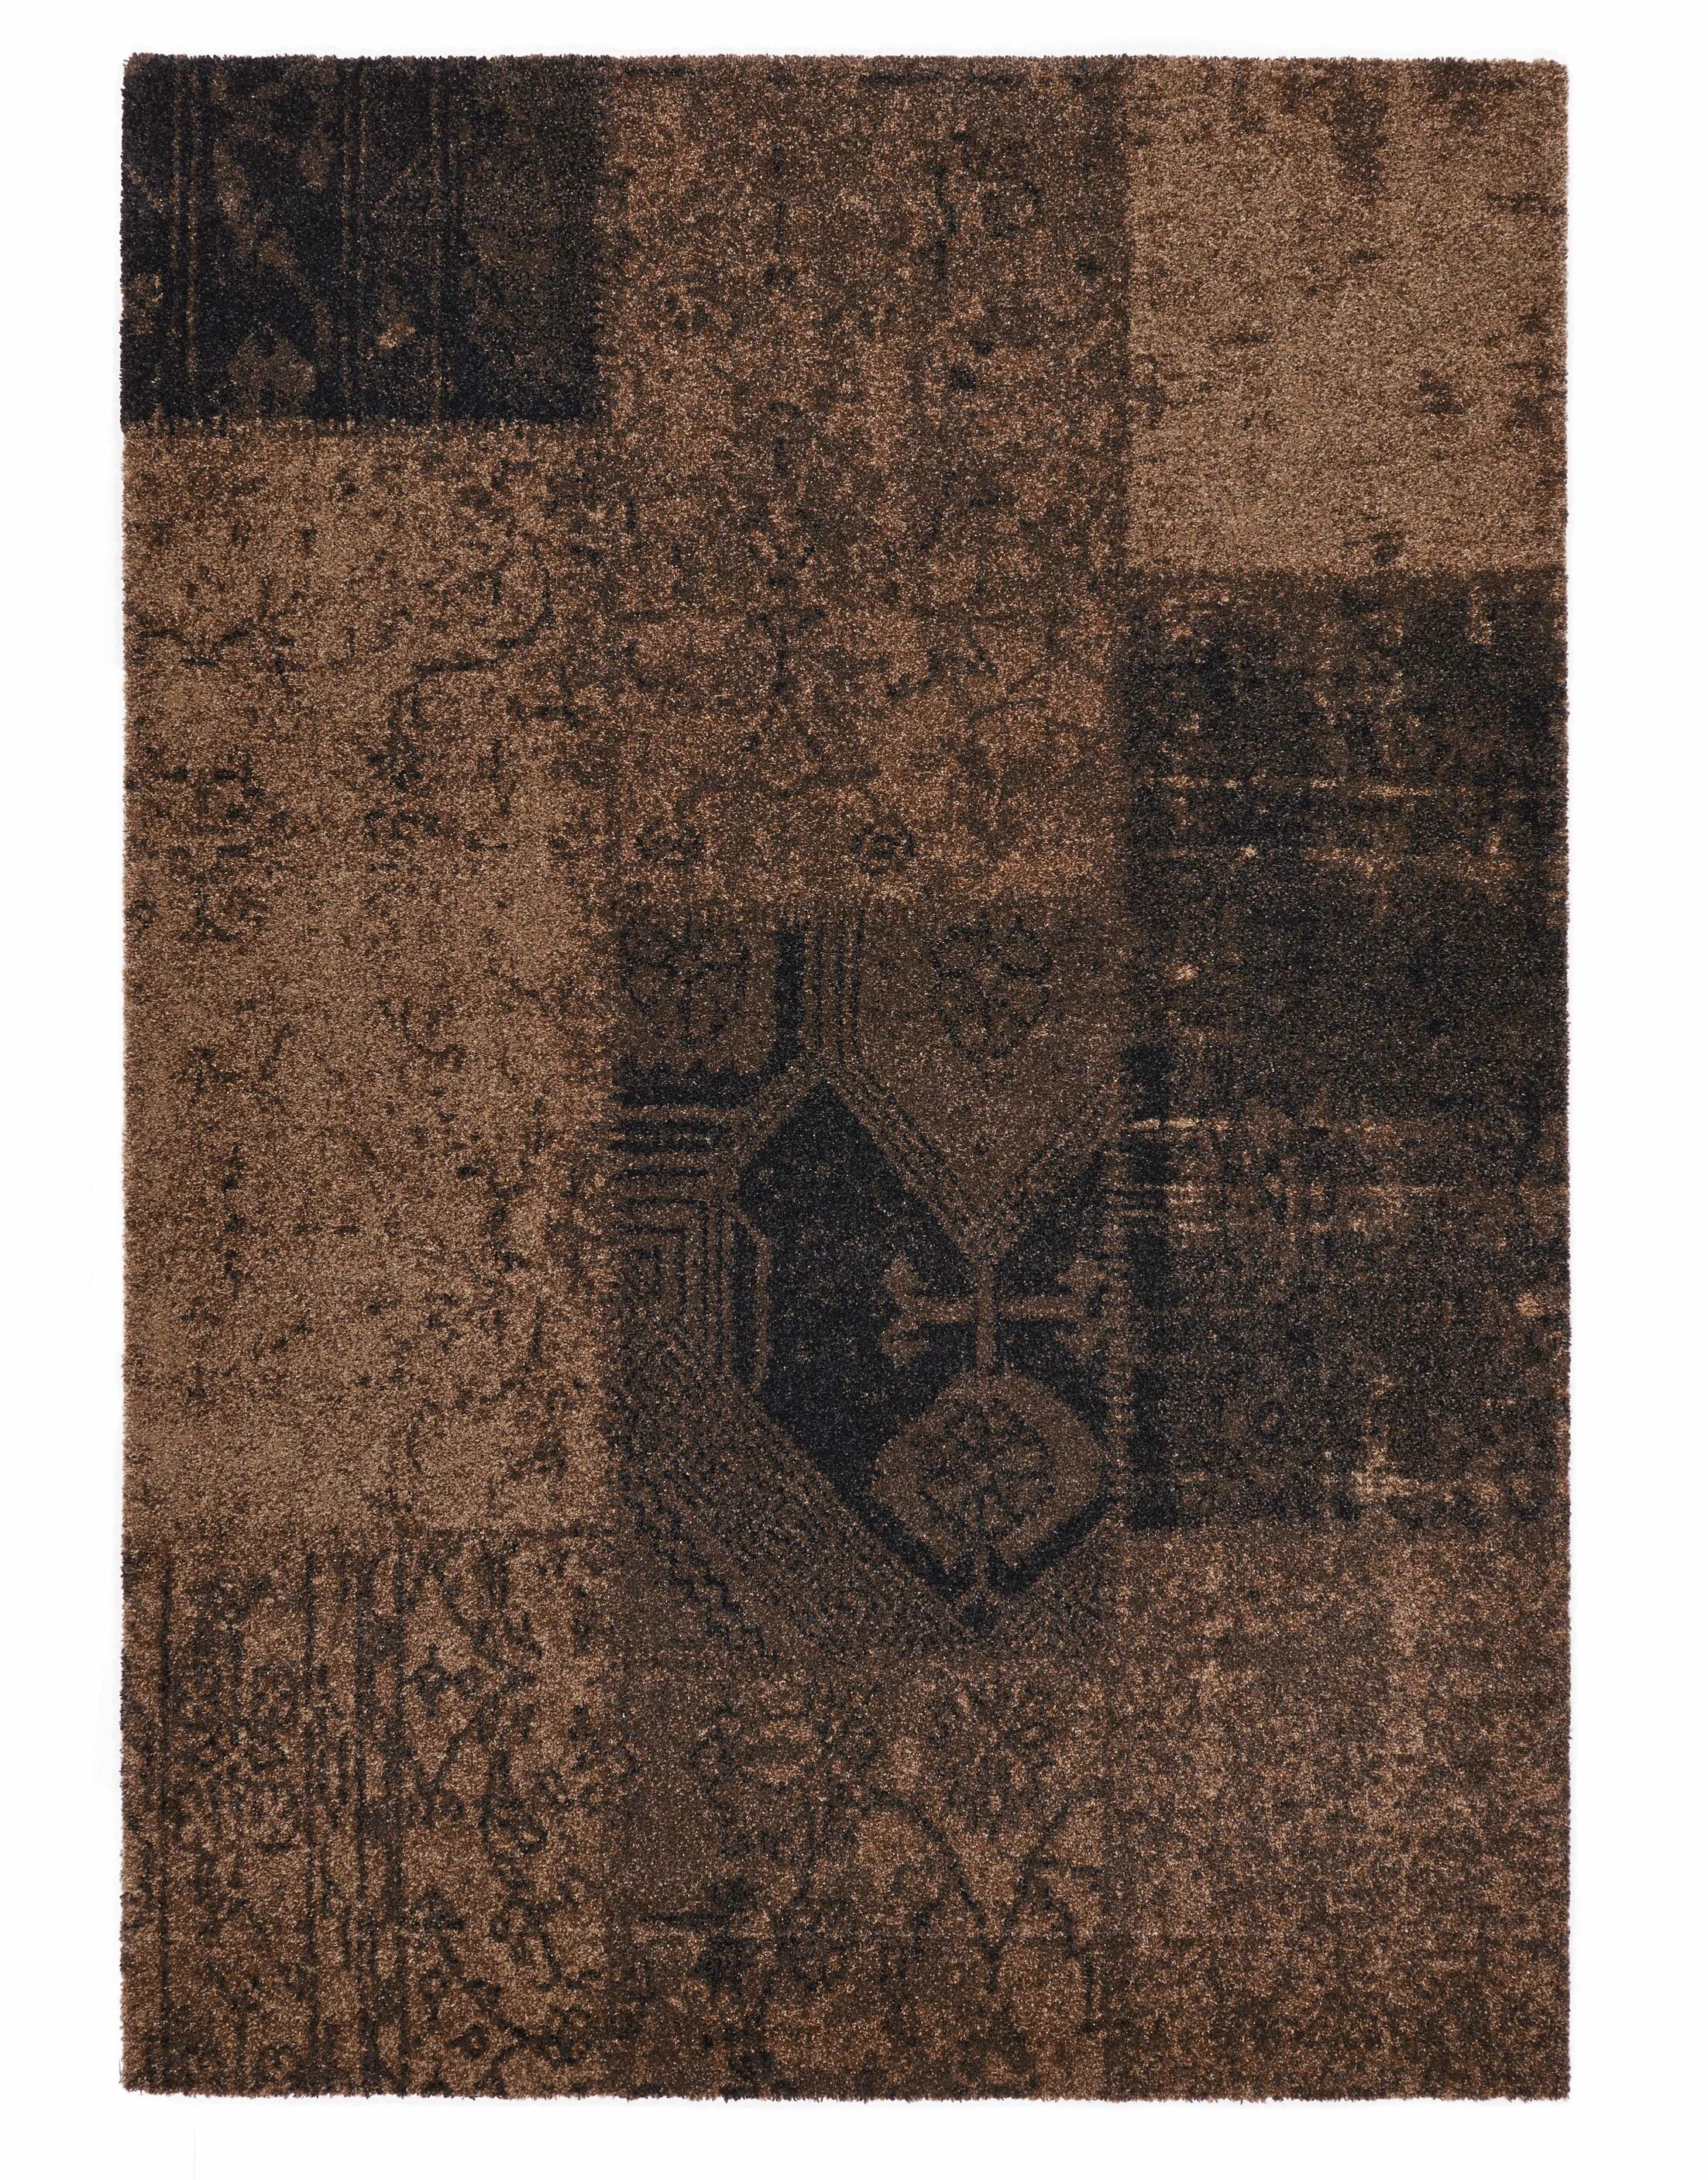 Downtown Brown Area Rug Rug Size: 6'7